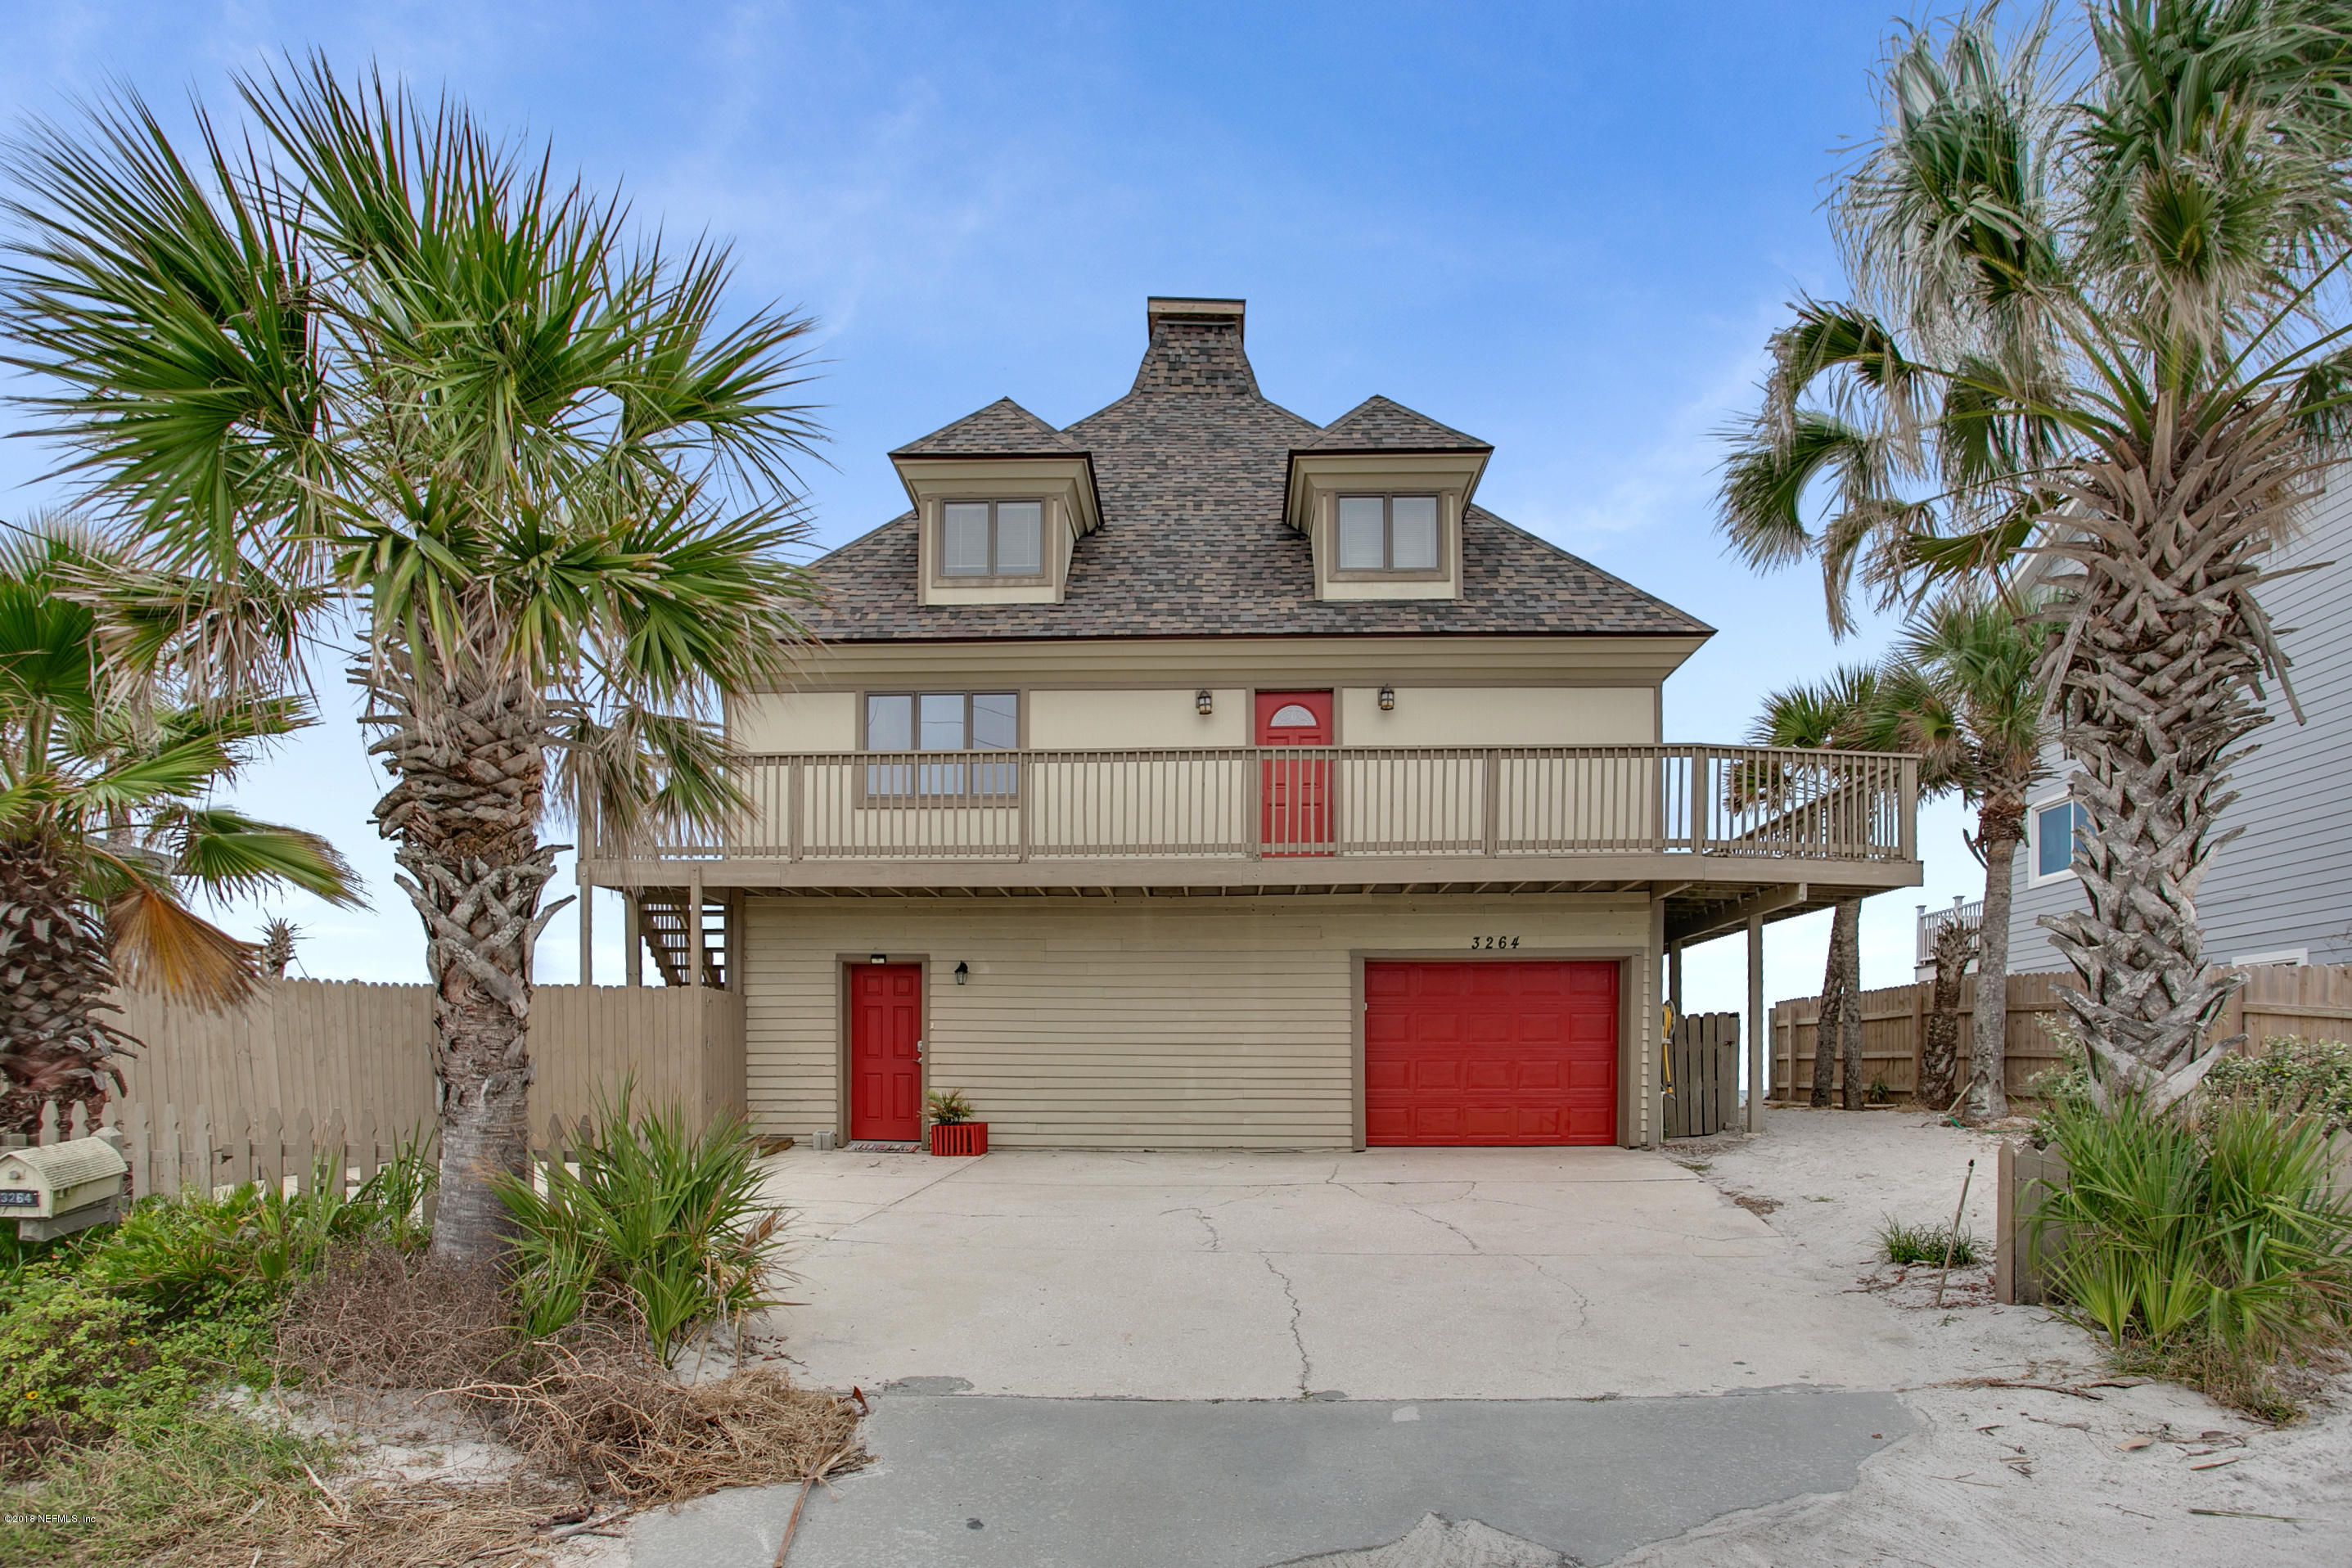 3264 COASTAL, ST AUGUSTINE, FLORIDA 32084, 3 Bedrooms Bedrooms, ,3 BathroomsBathrooms,Residential - single family,For sale,COASTAL,964122